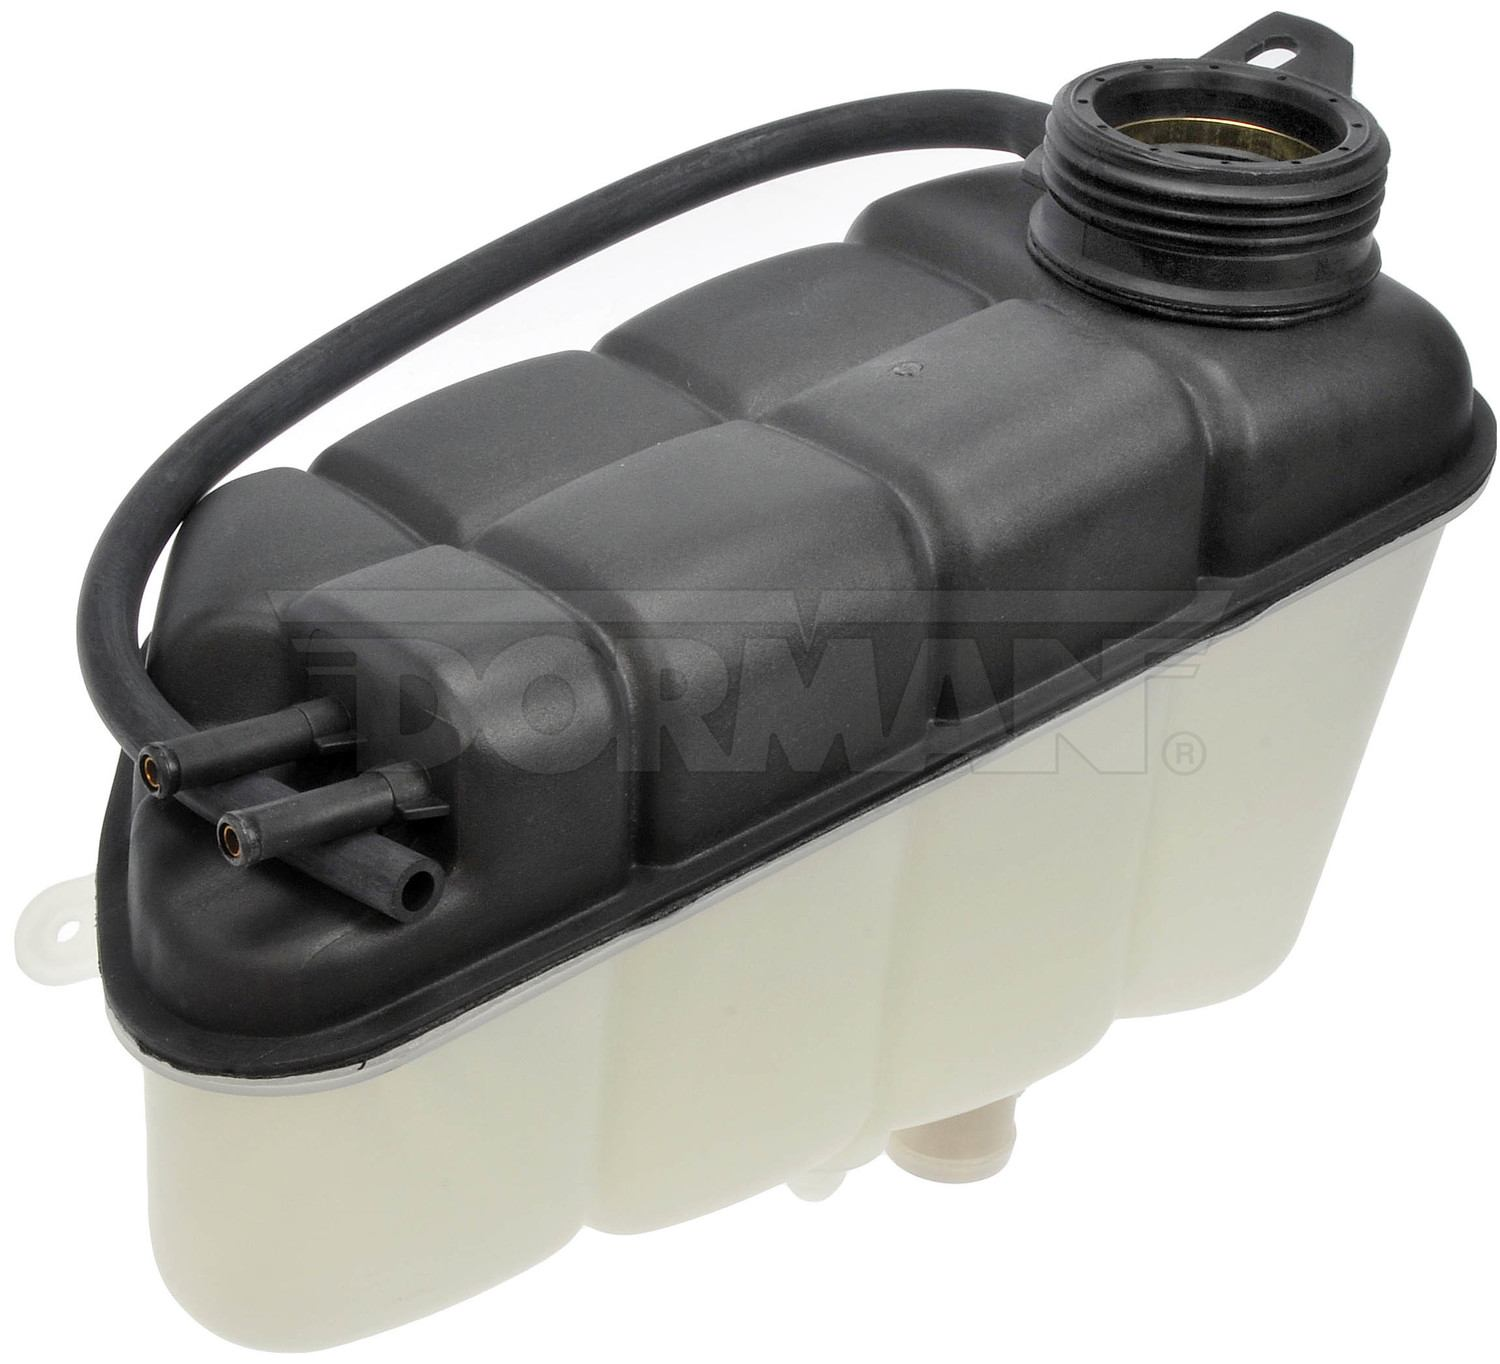 DORMAN OE SOLUTIONS - Engine Coolant Recovery Tank (Front) - DRE 603-633